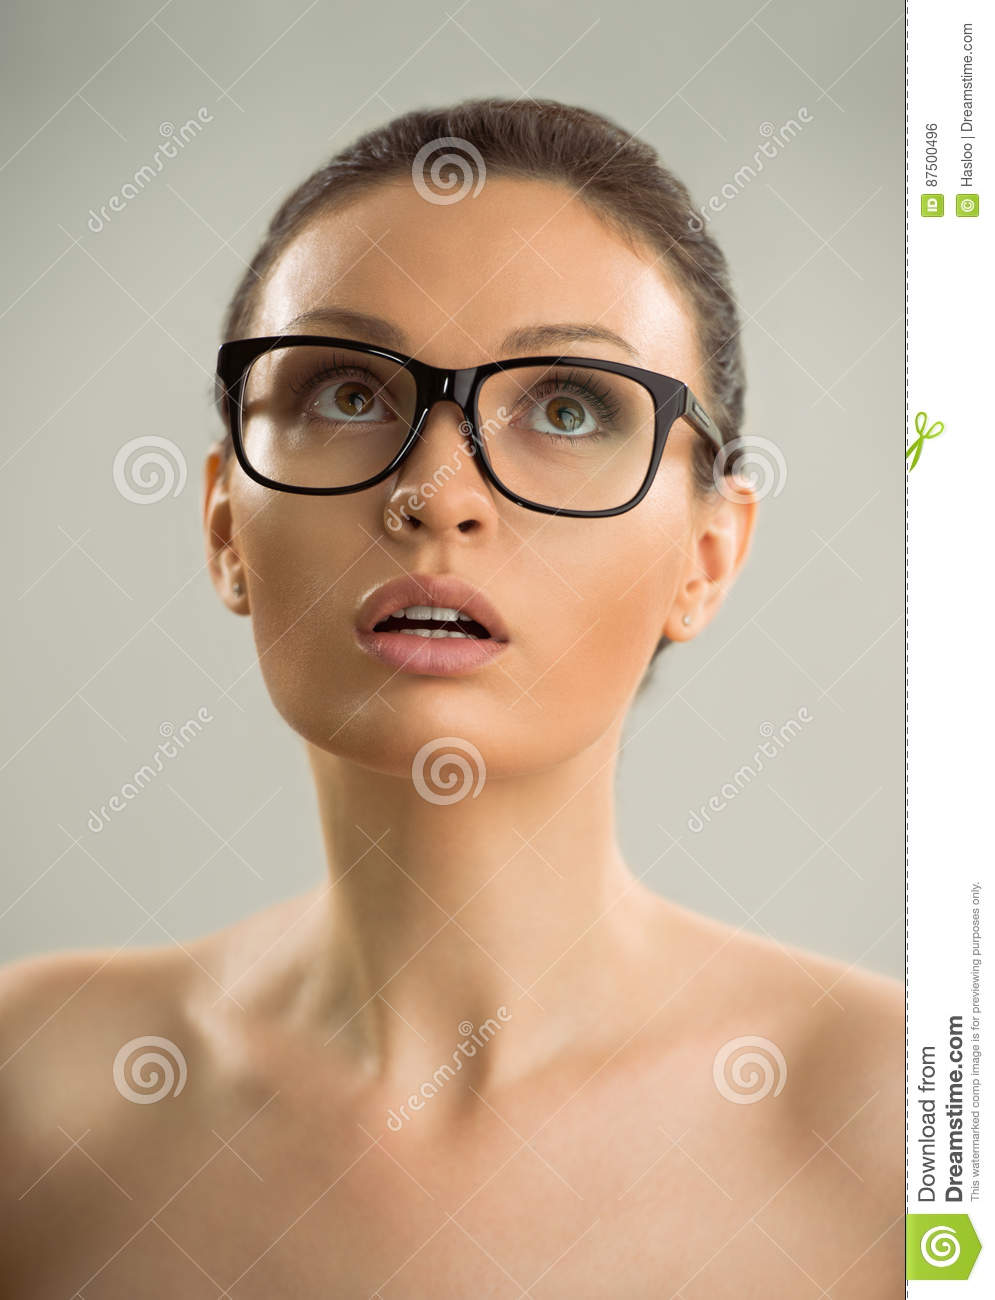 Naked girls and women wearing glasses